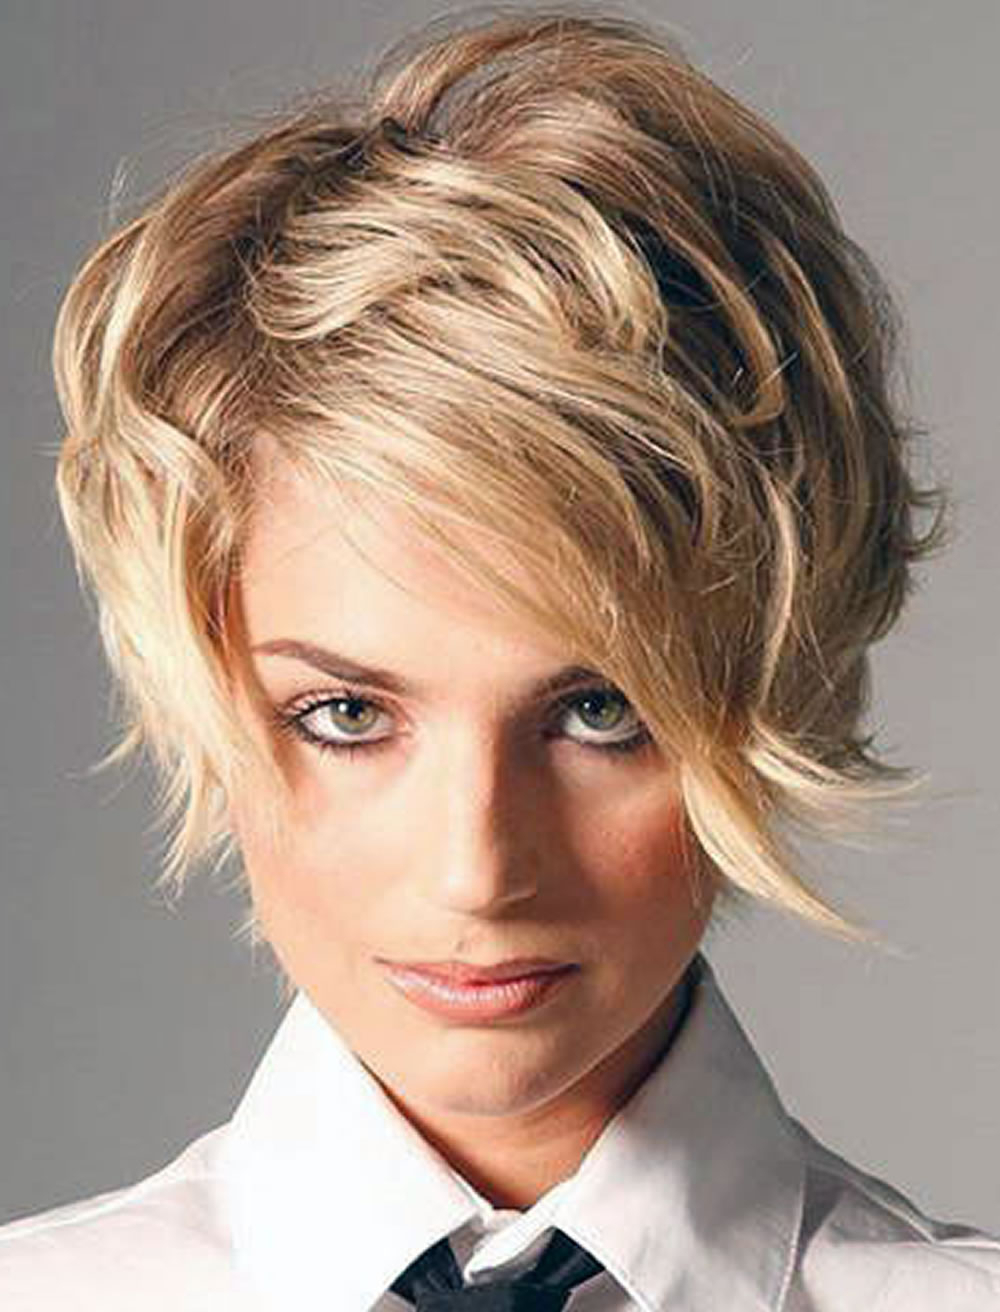 Engaging Side Swept Short Hairstyles For Thick Hair – Hairstyles With Regard To Side Swept Short Hairstyles (View 7 of 25)